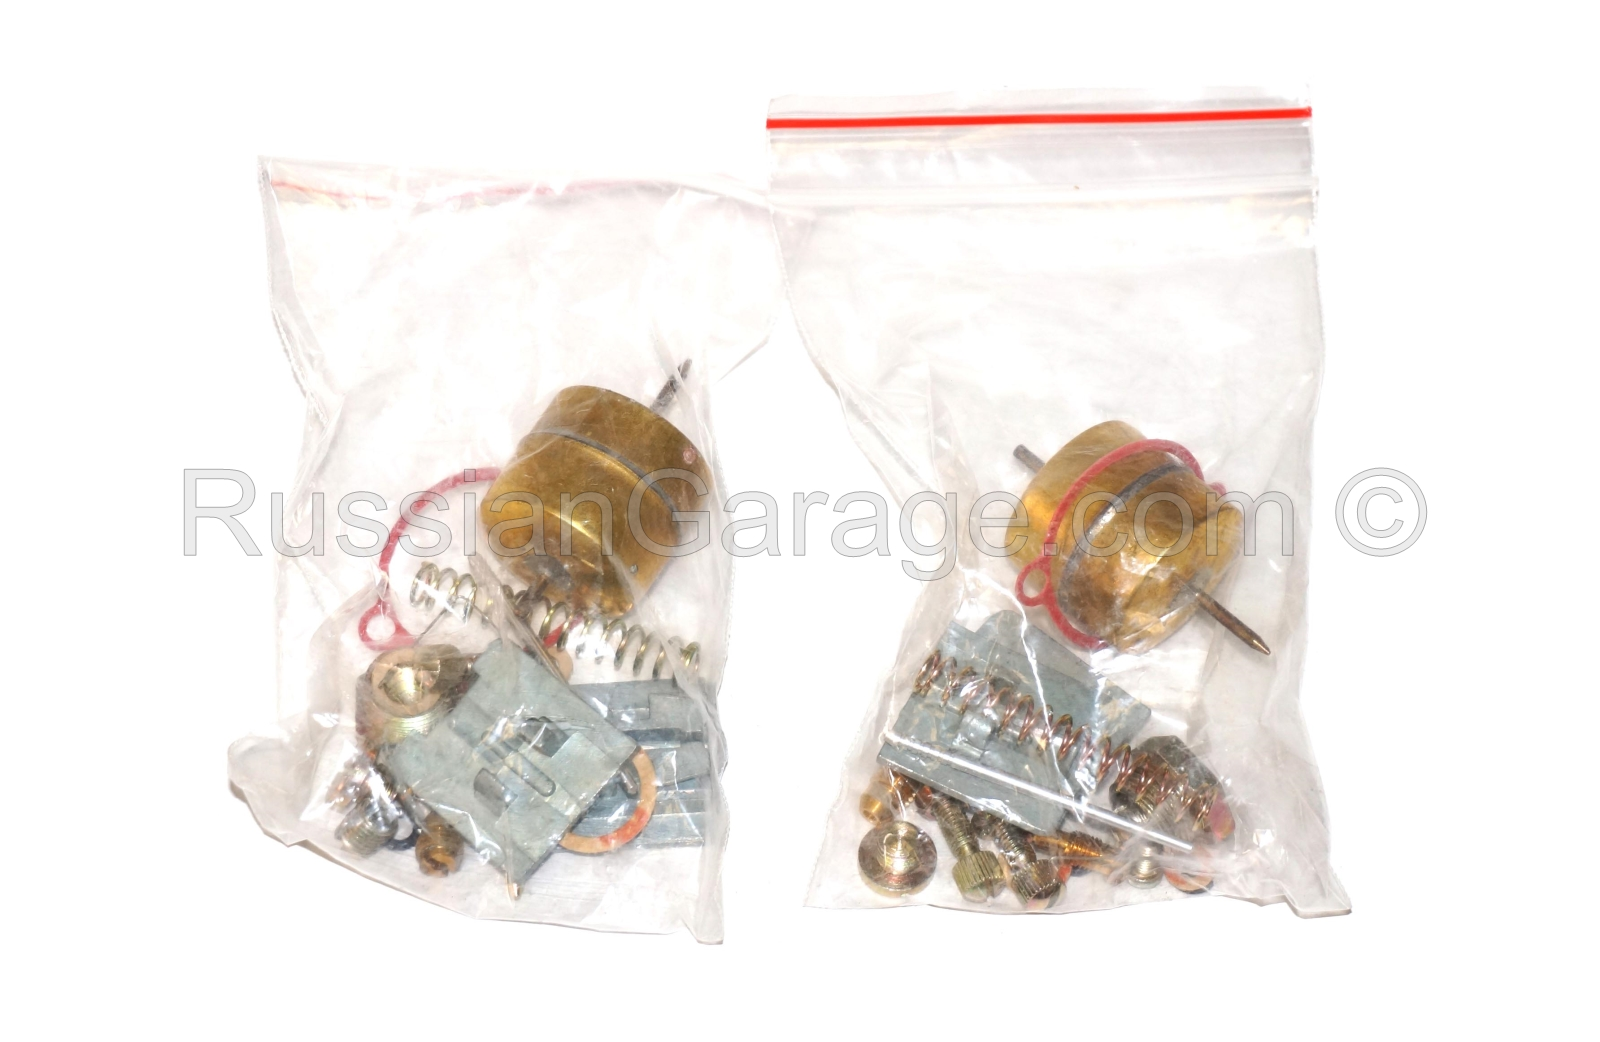 Repair rebuild kit K301, K302 (K-301, K-302) carbu...